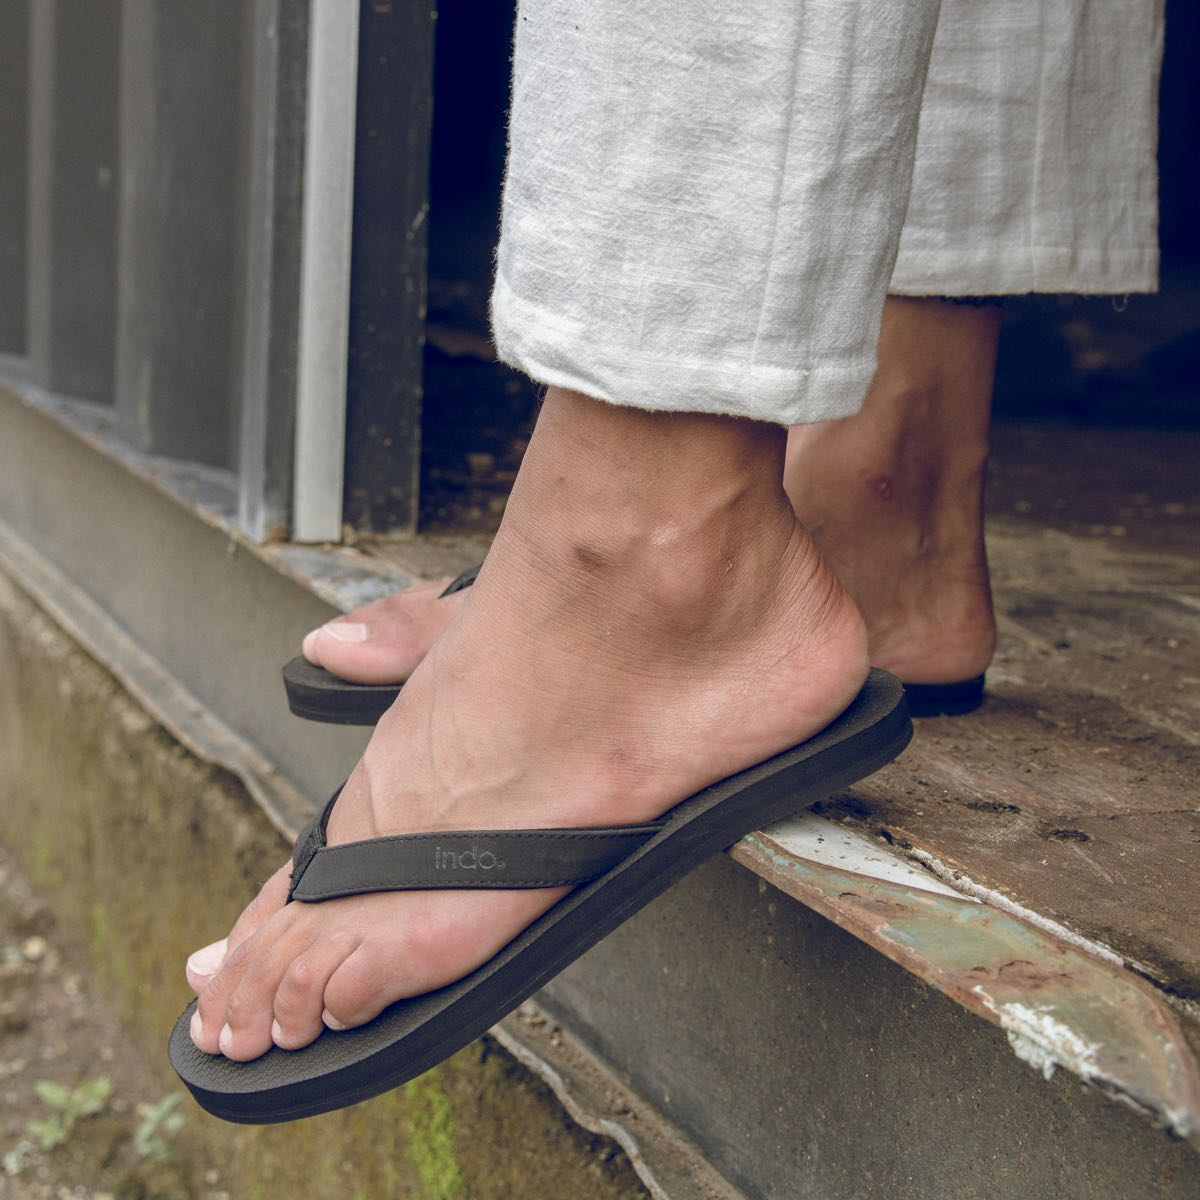 Man wearing black flip flops with white pants in Bali